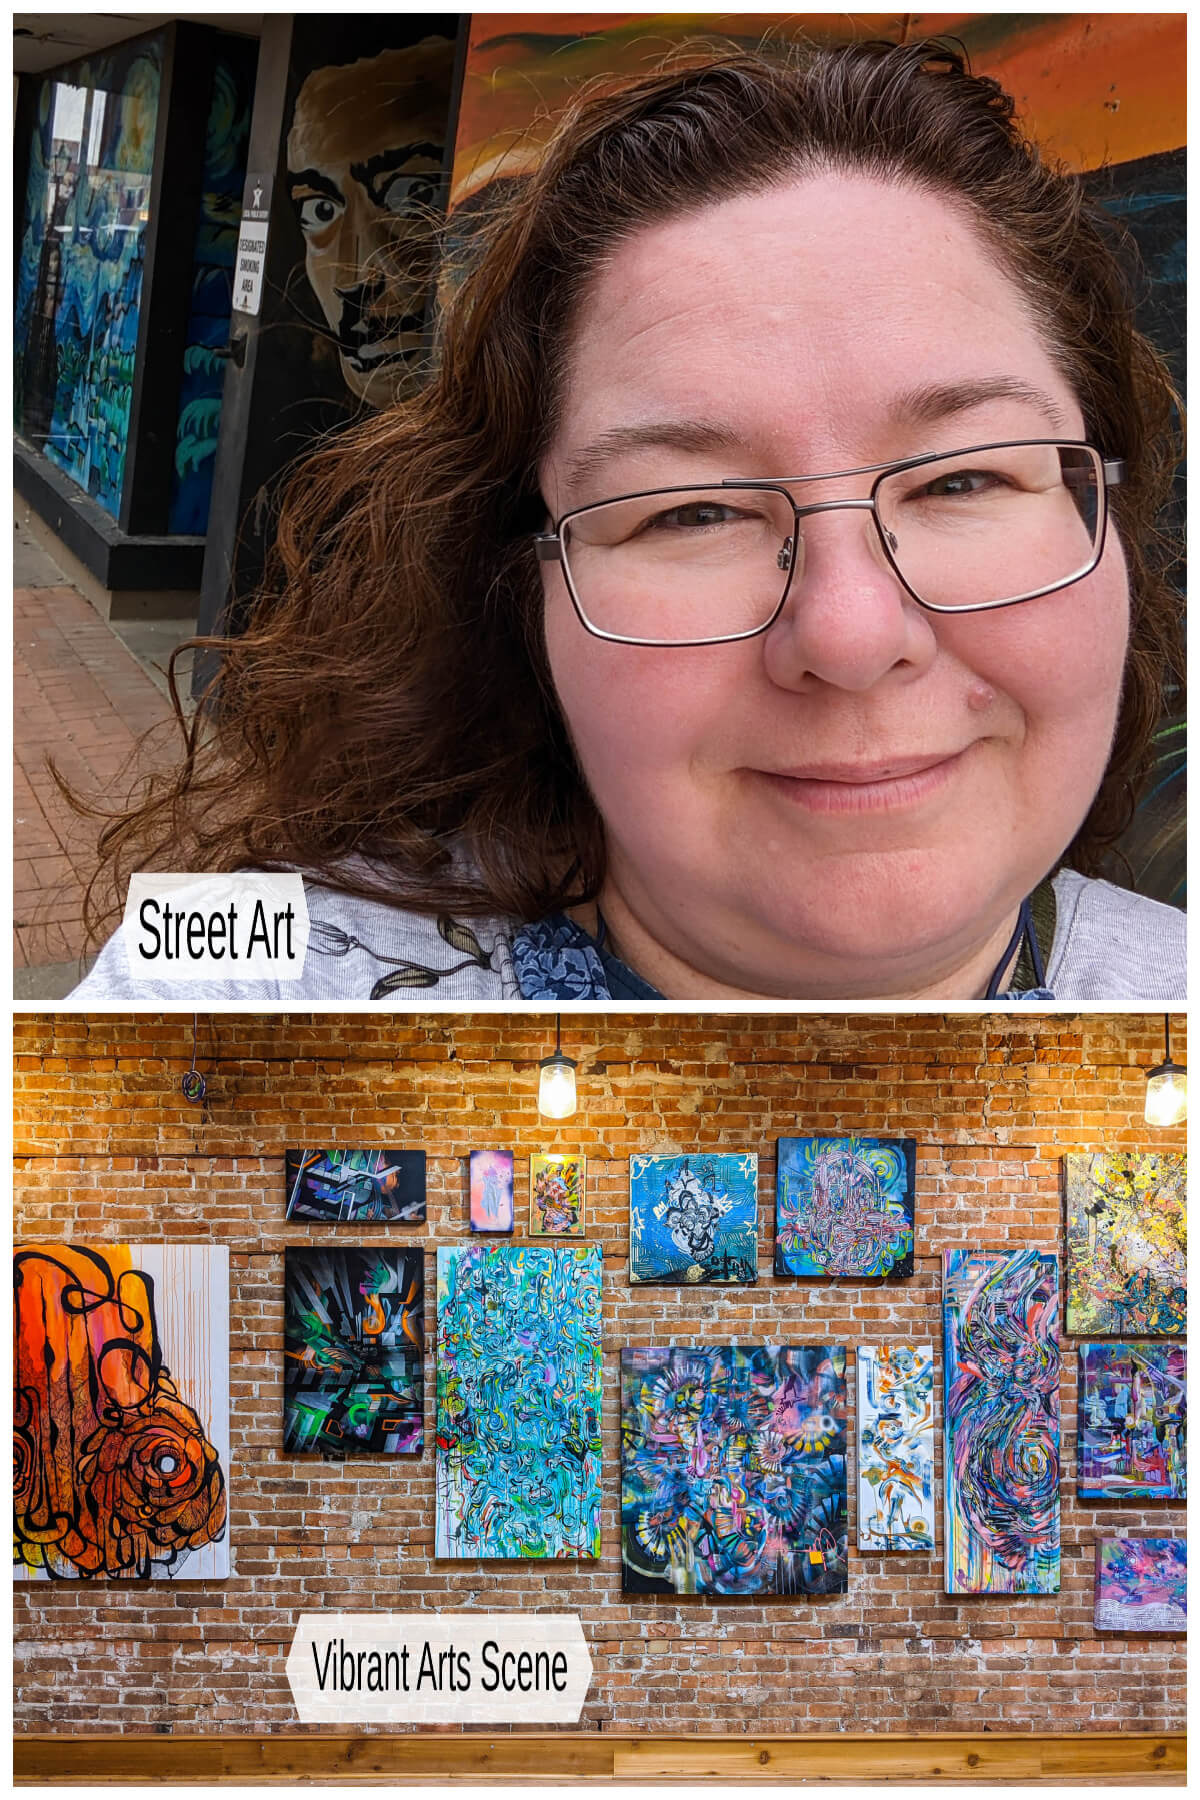 Two images showing art inside and outside in Medicine Hat, Alberta.